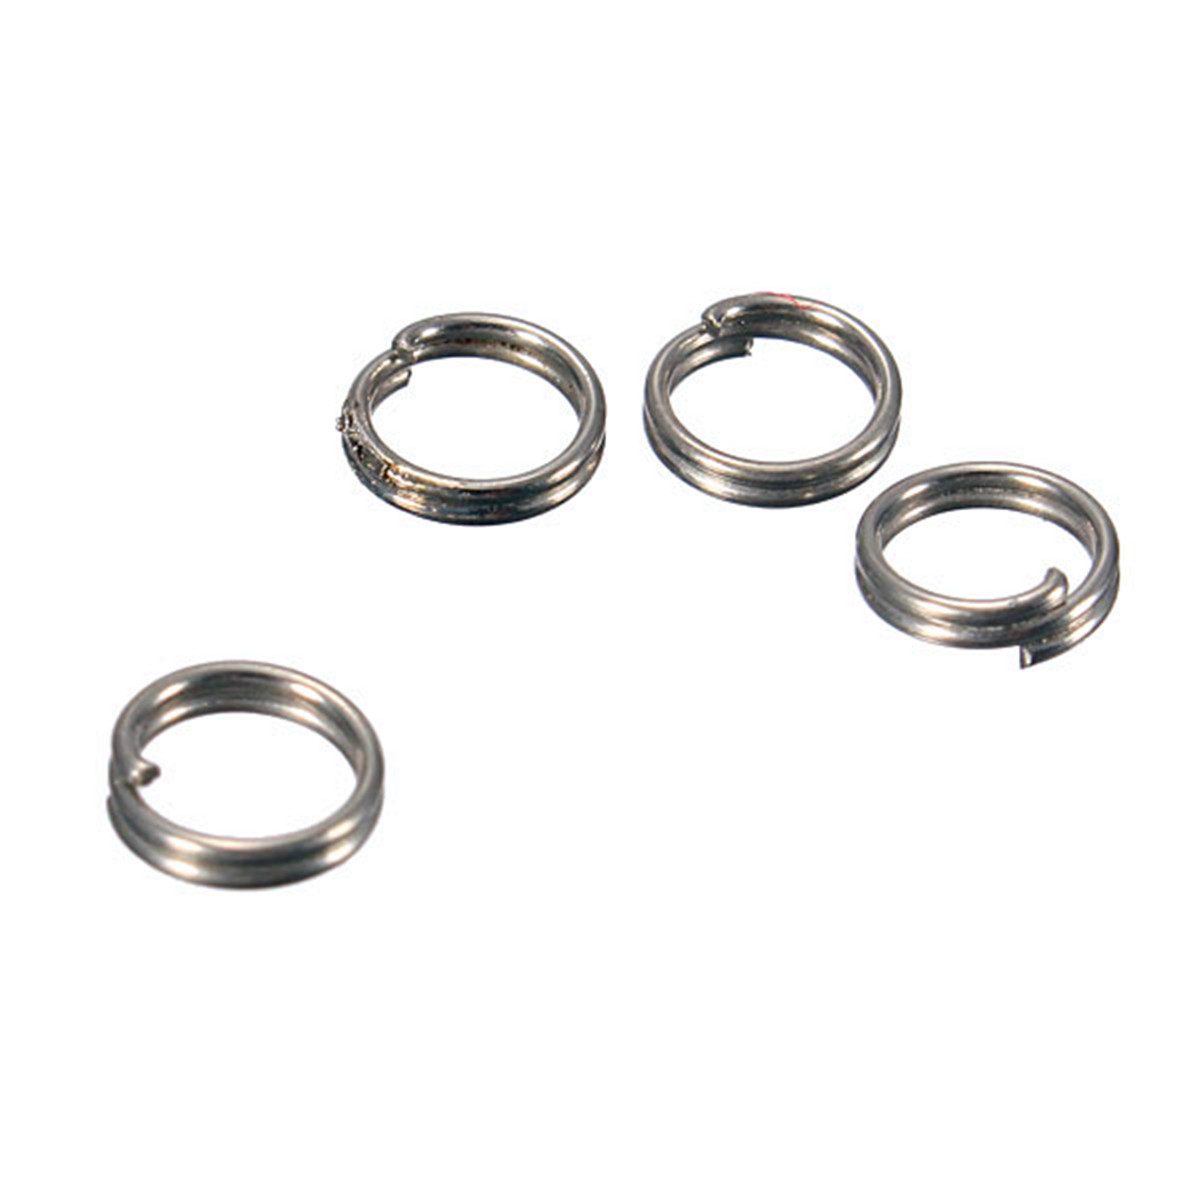 50Pcs Fish Fishing Solid Stainless Steel Snap Split Ring